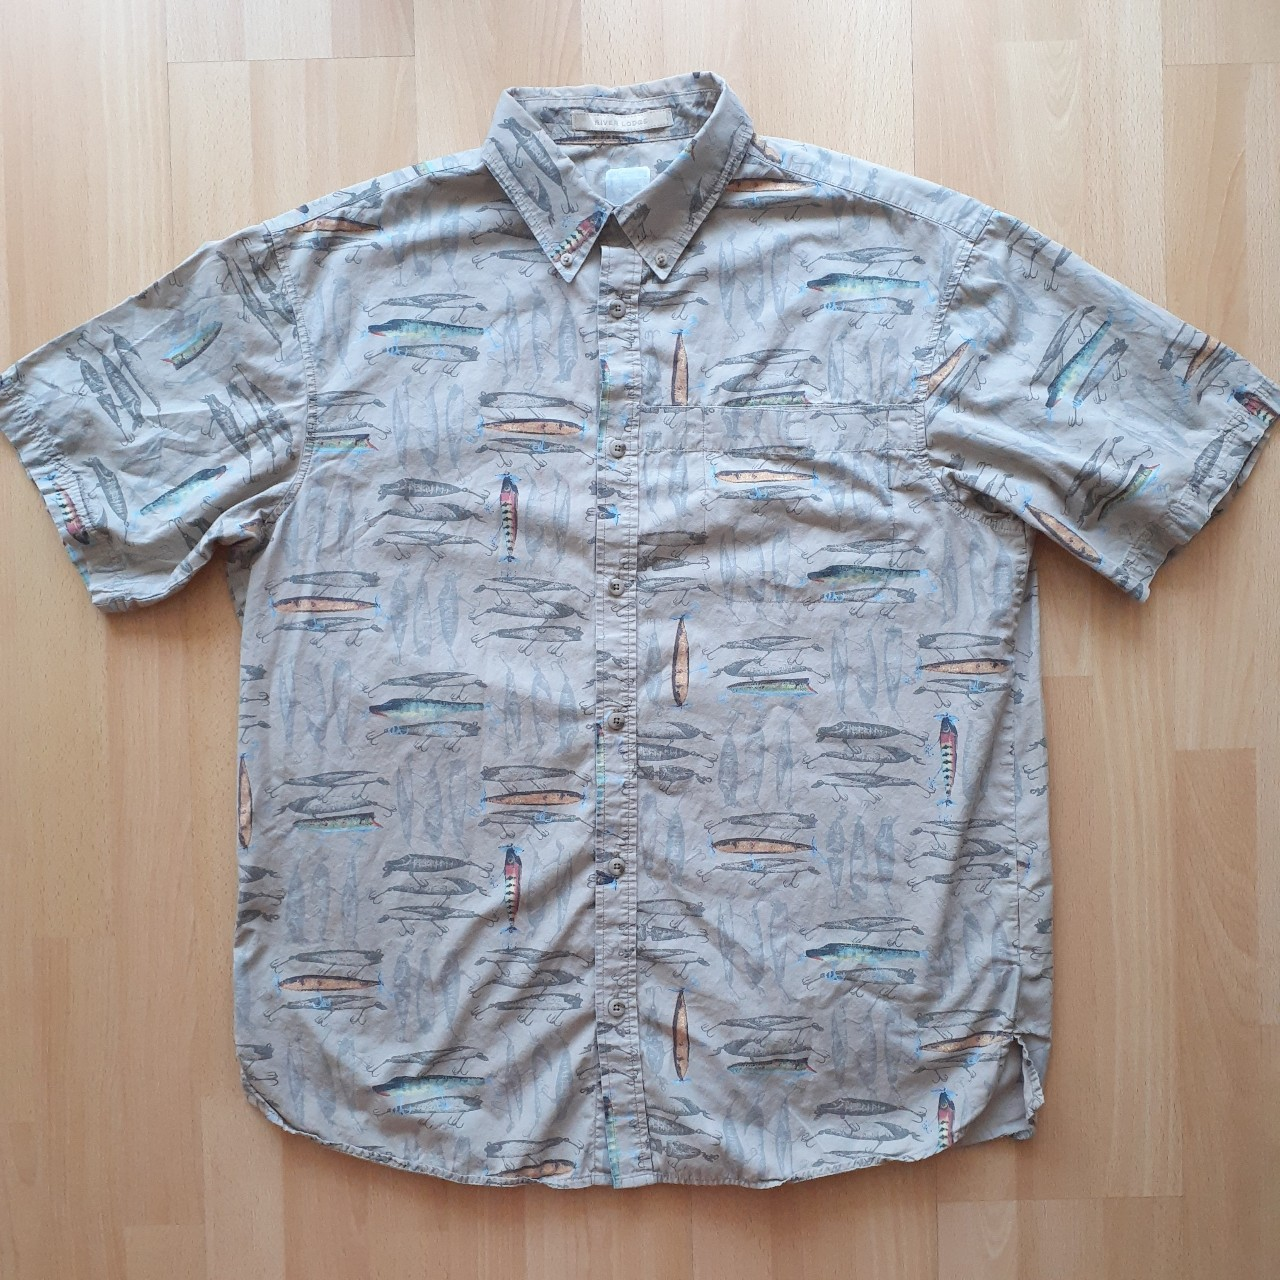 Product Image 1 - Columbia summer shirt Super cute and